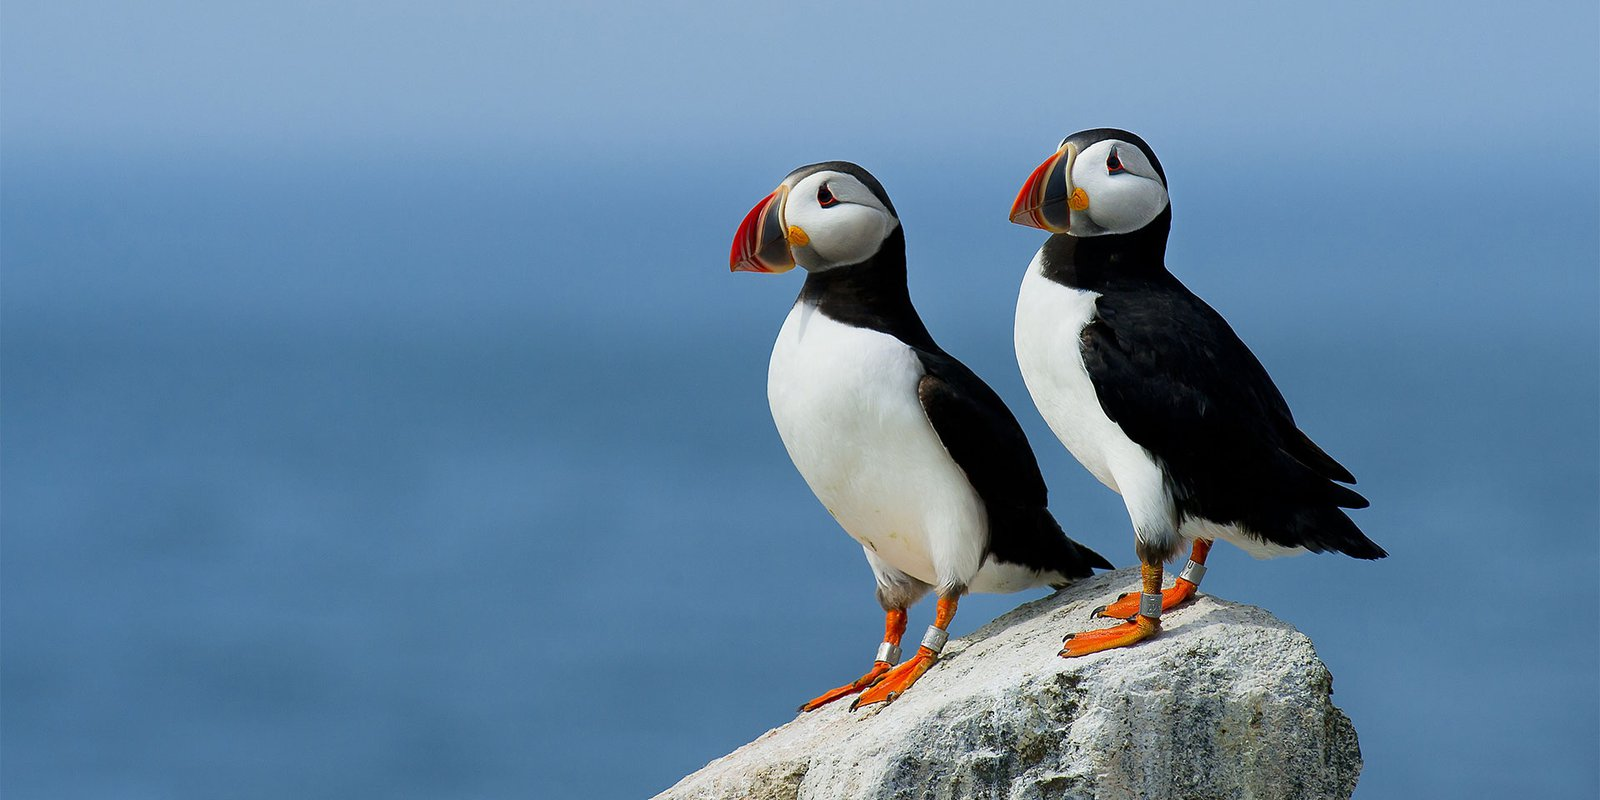 A pair of Puffin seabirds (known to mate for life)